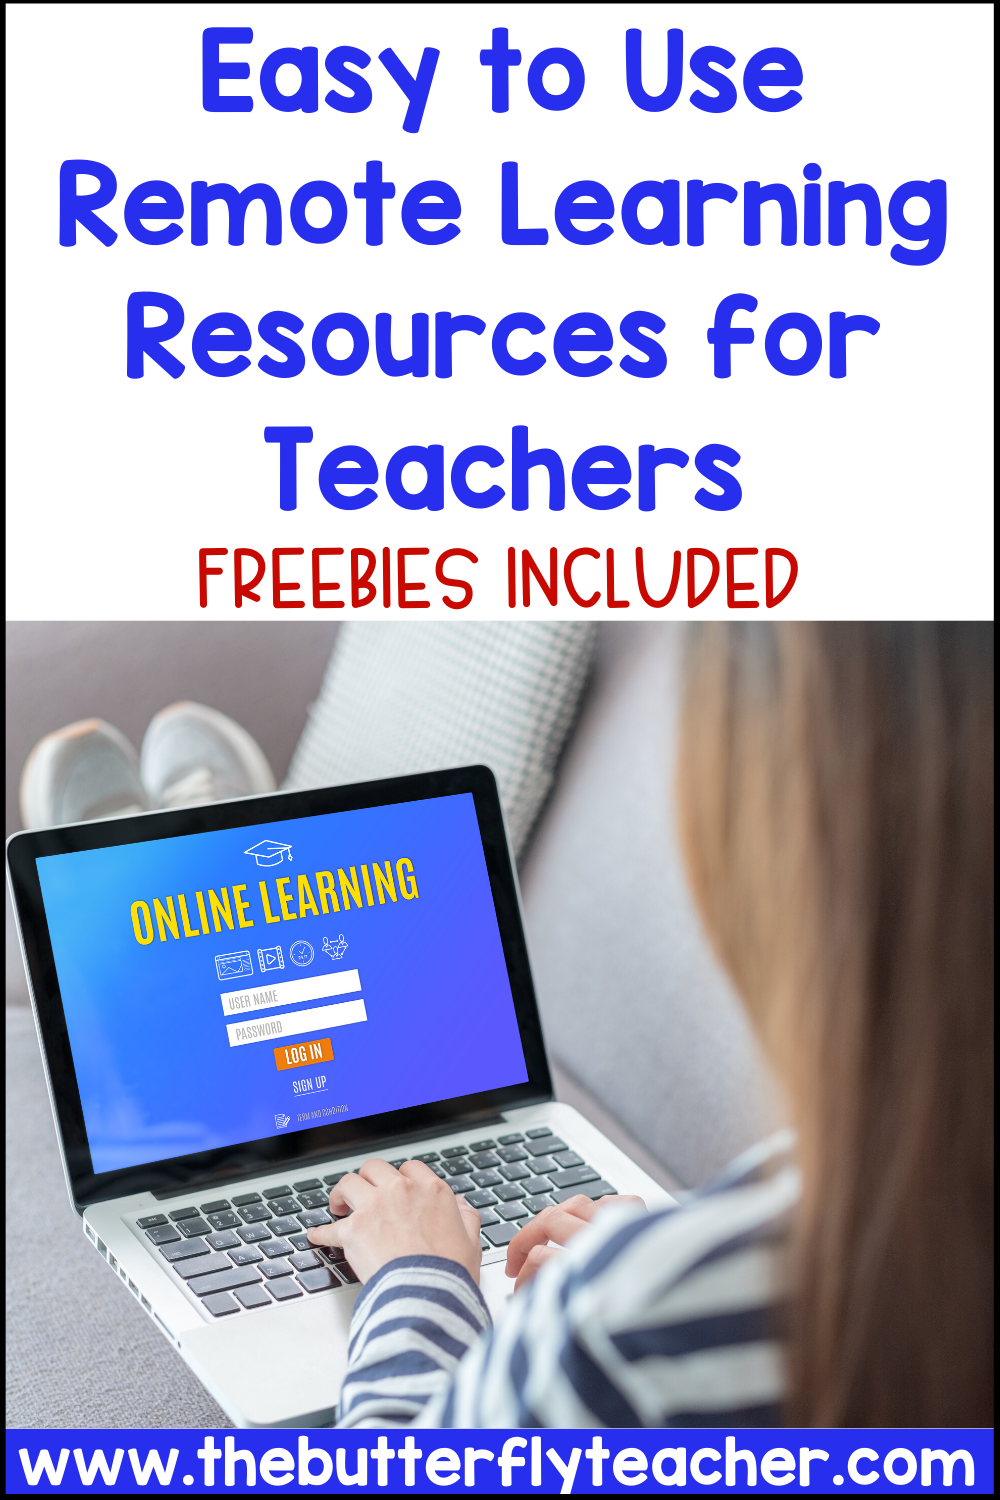 Easy to Use Remote Learning Resources for Teachers in 2020